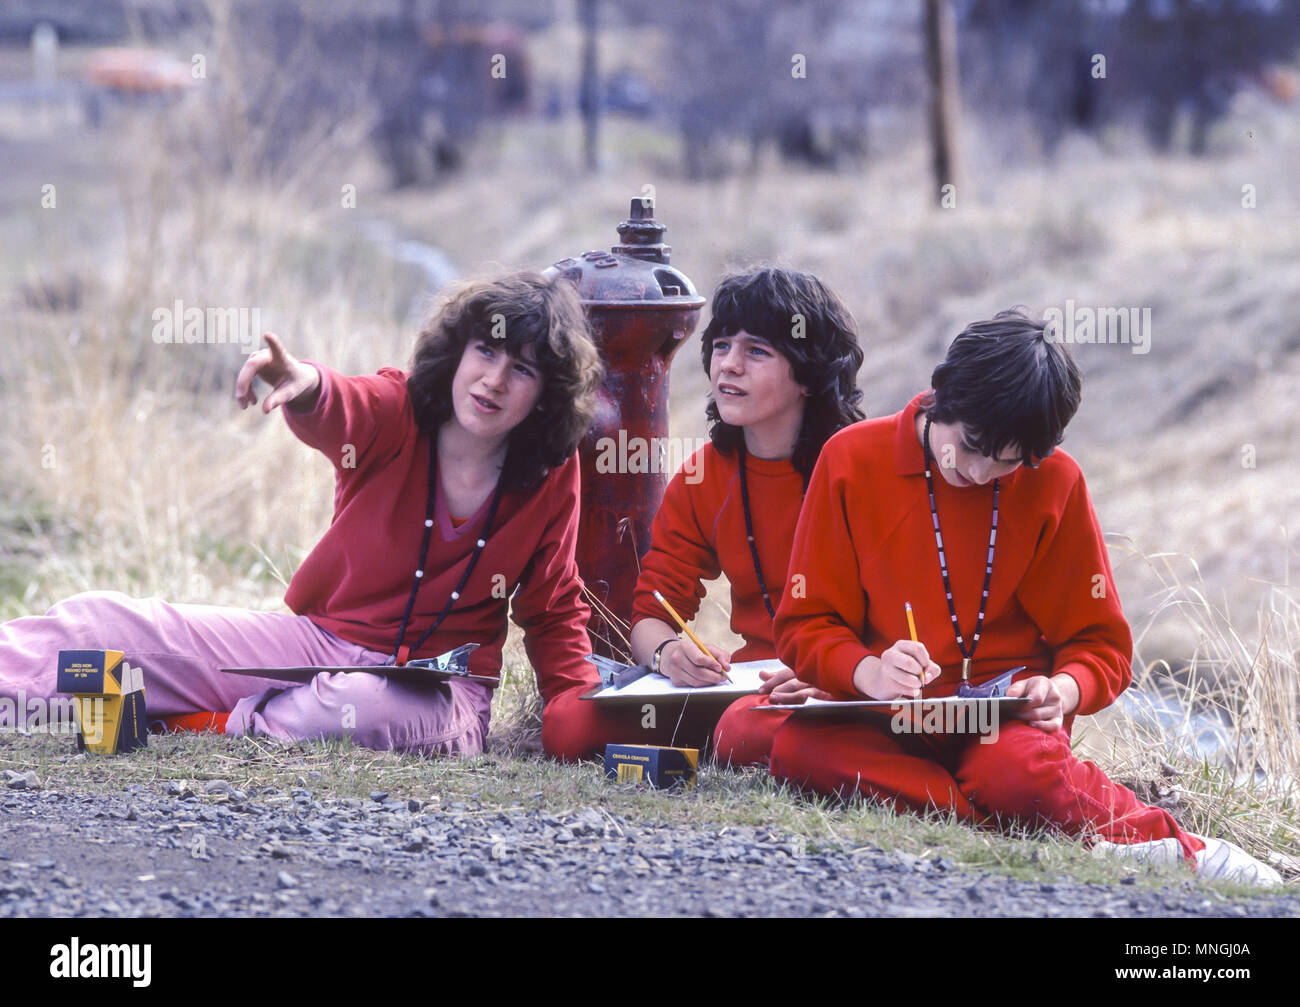 ANTELOPE, OREGON, USA - Rajneeshees, followers of religious cult leader Bhagwan Shree Rajneesh, sketching in town of Antelope. 1984 - Stock Image